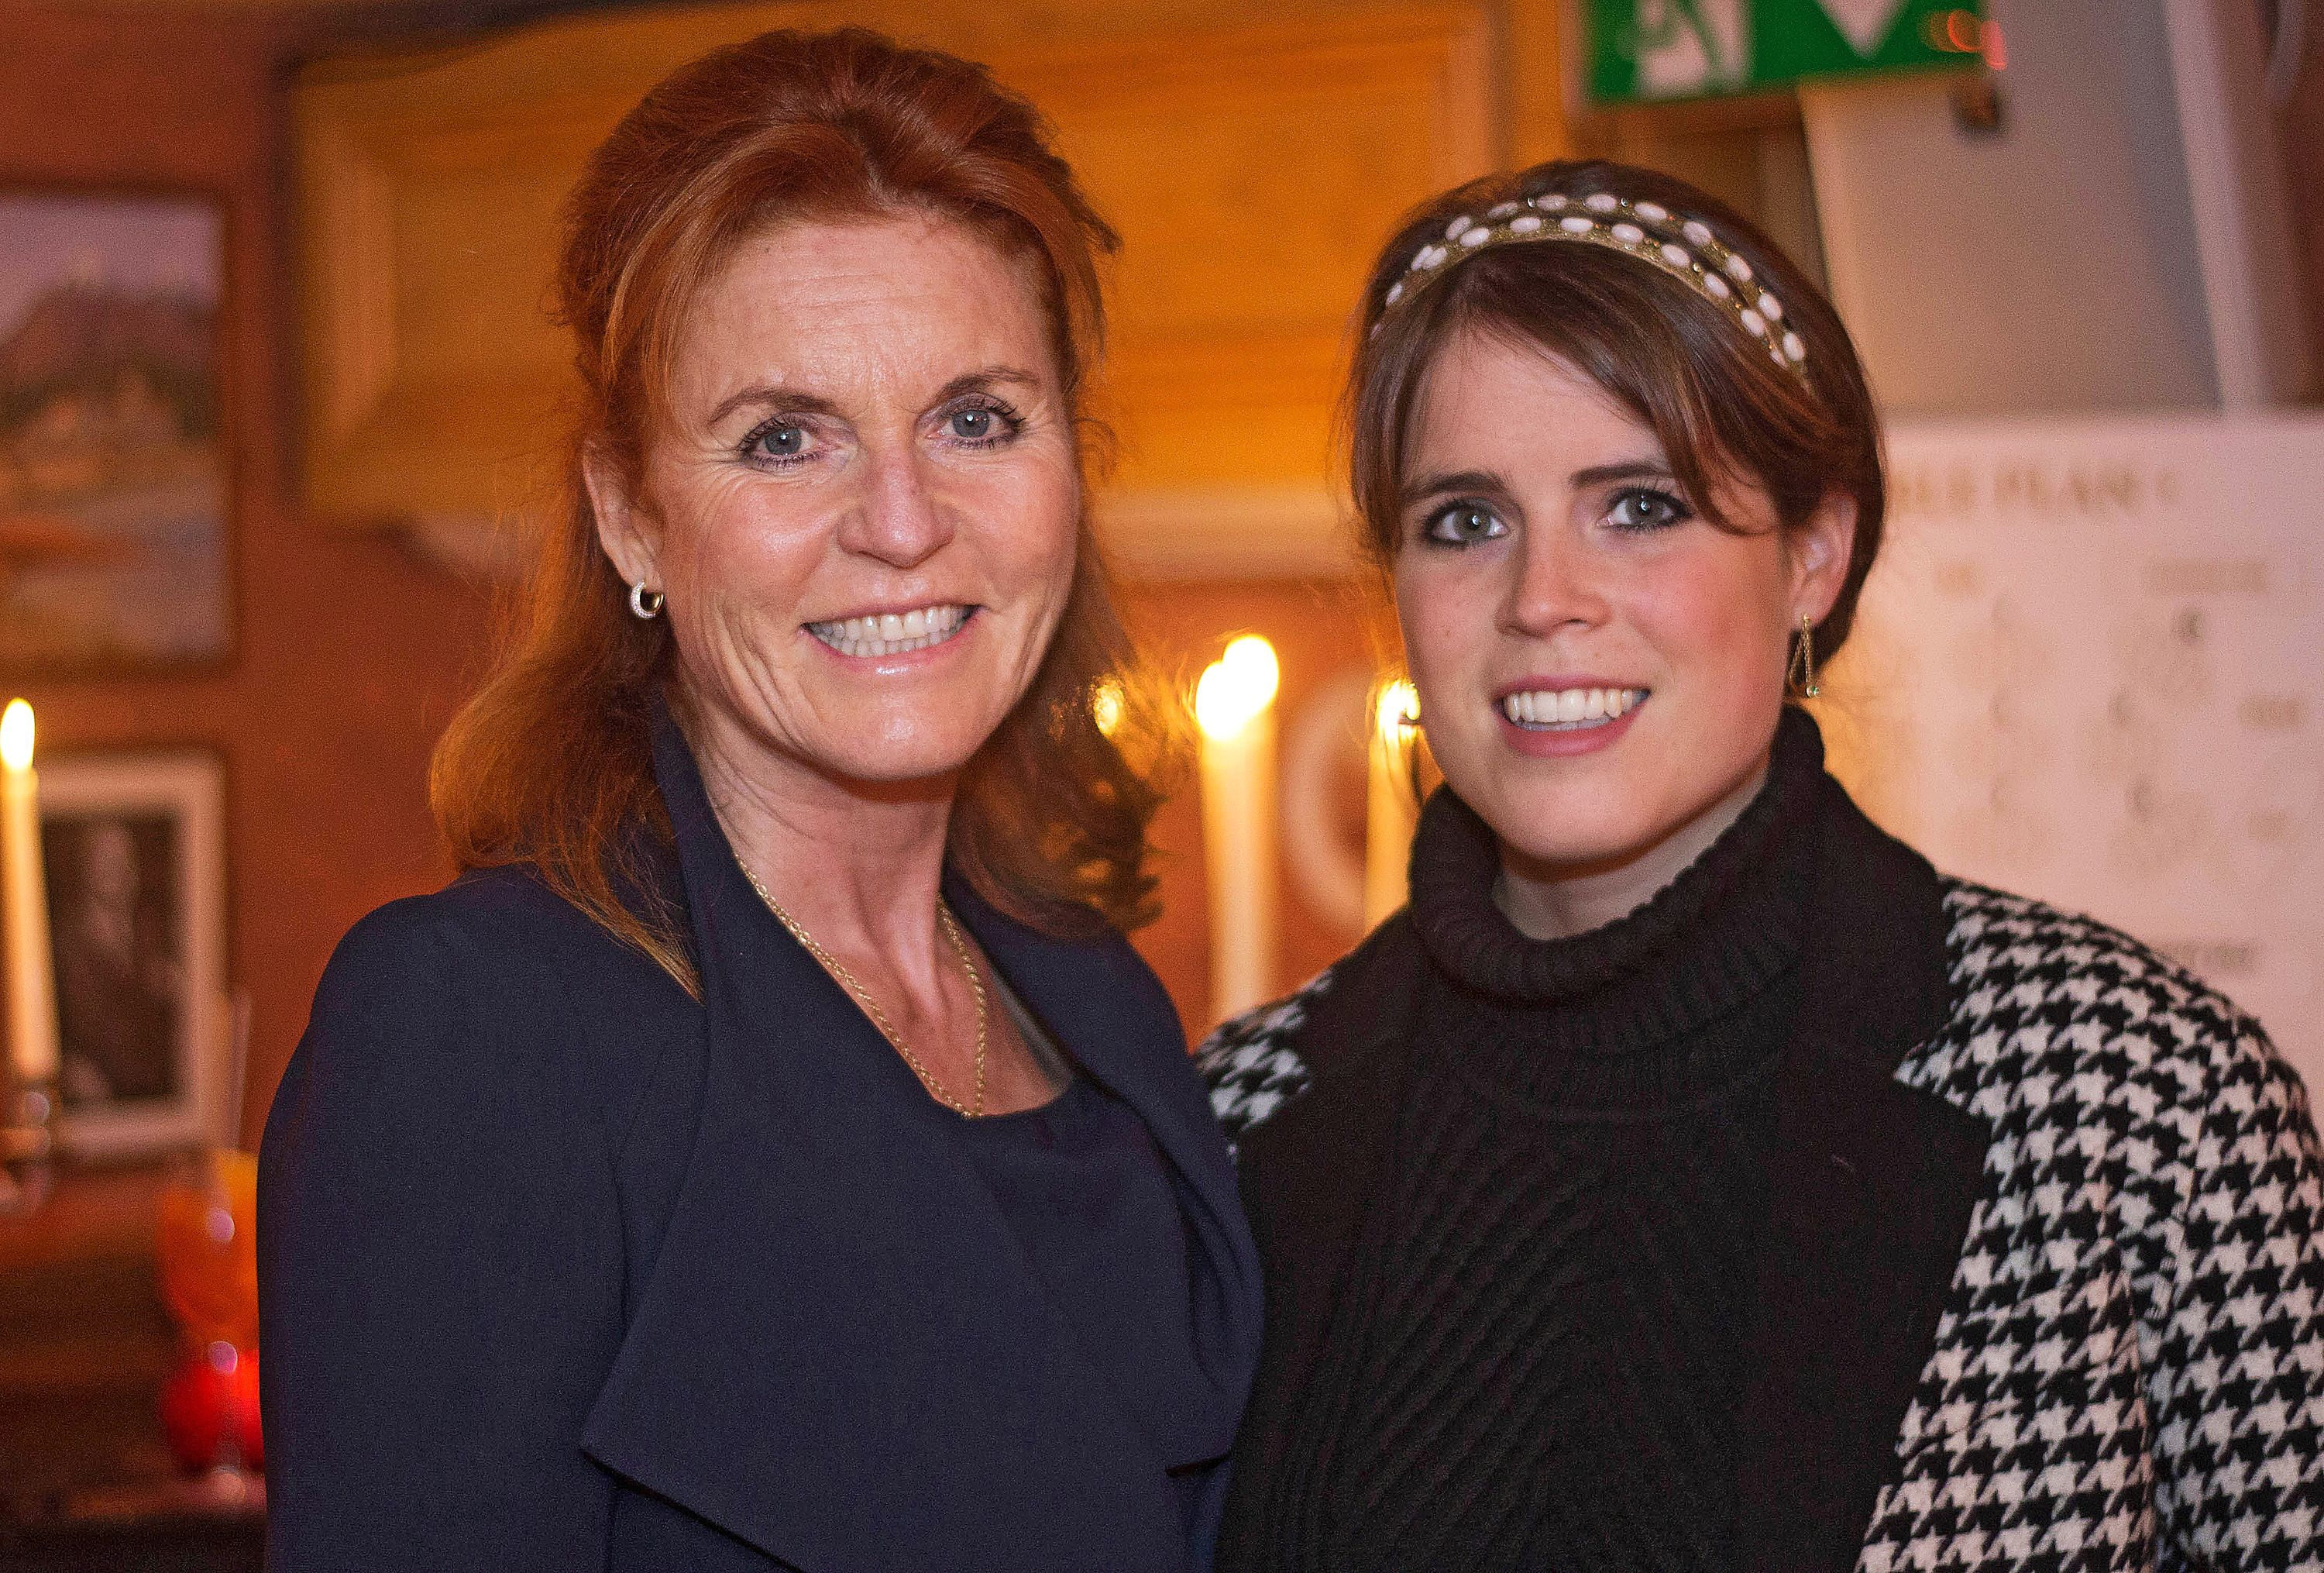 Princess Eugenie's Mom Sarah Ferguson Just Opened Up About Getting Plastic Surgery